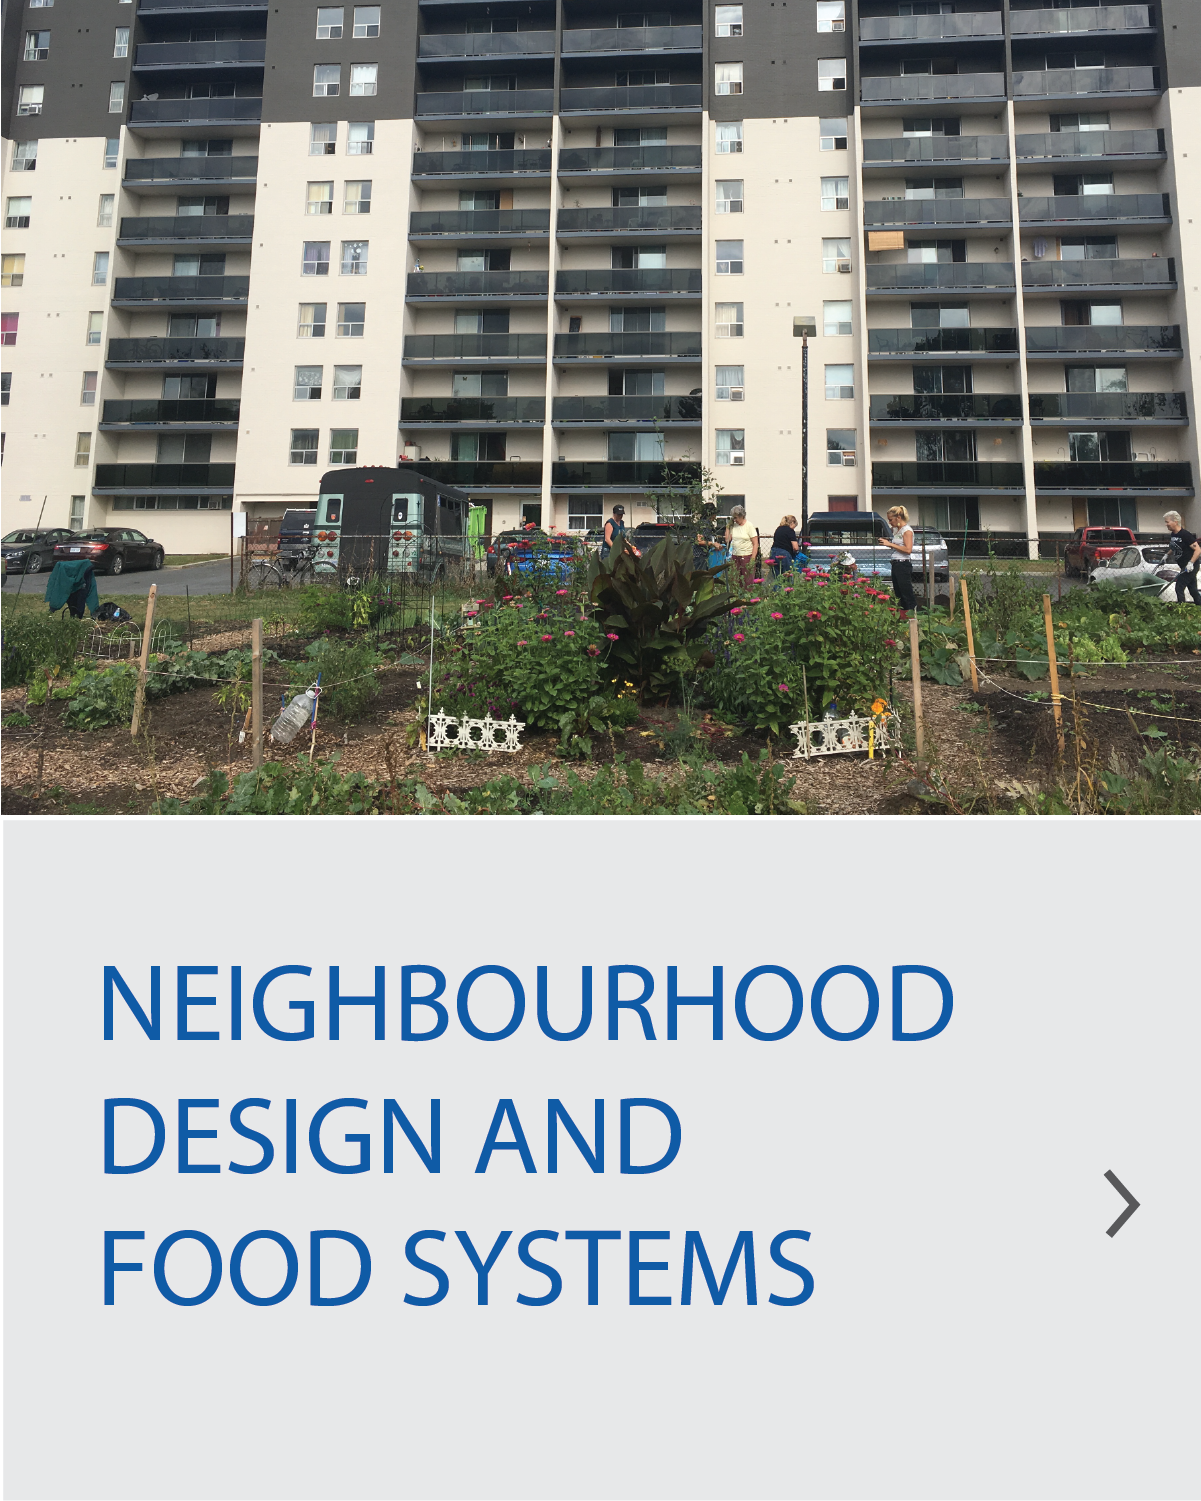 Neighbourhood Design and Food Systems